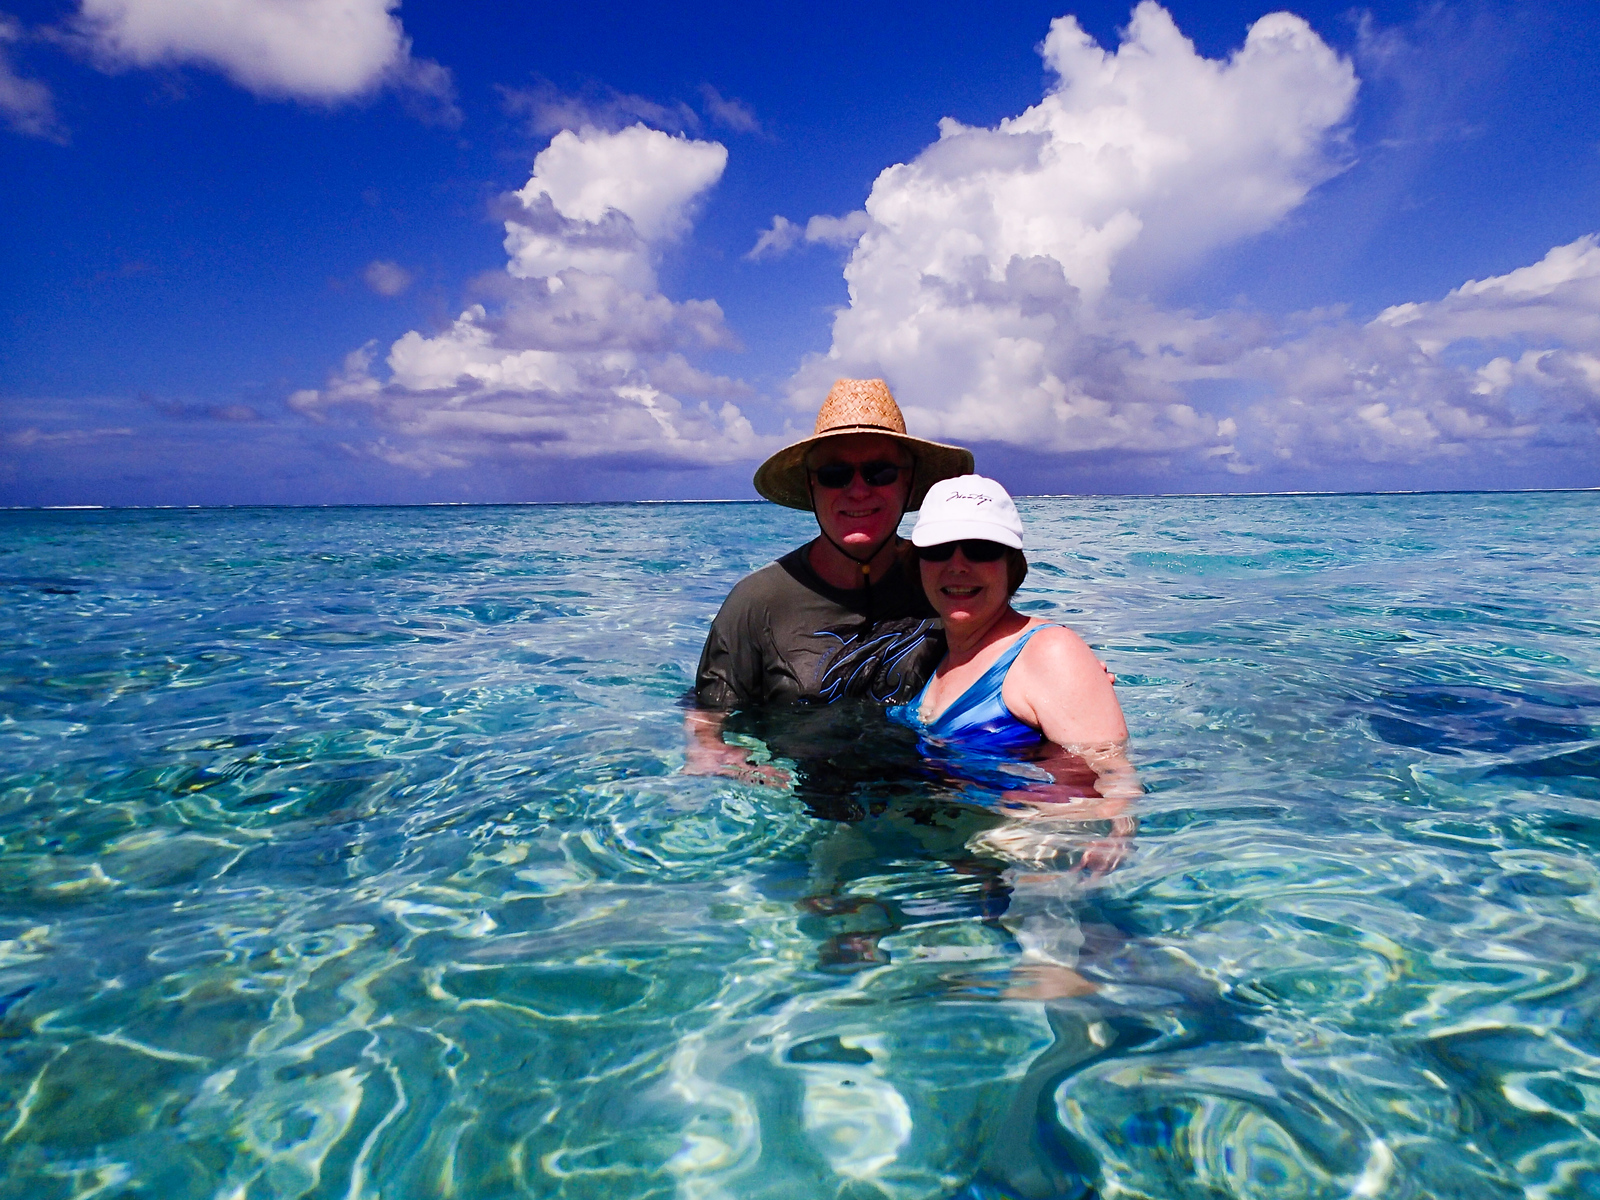 On a luxury cruise to Bora Bora, a man and woman stand in turquoise water surrounded by a blue sky and white clouds.